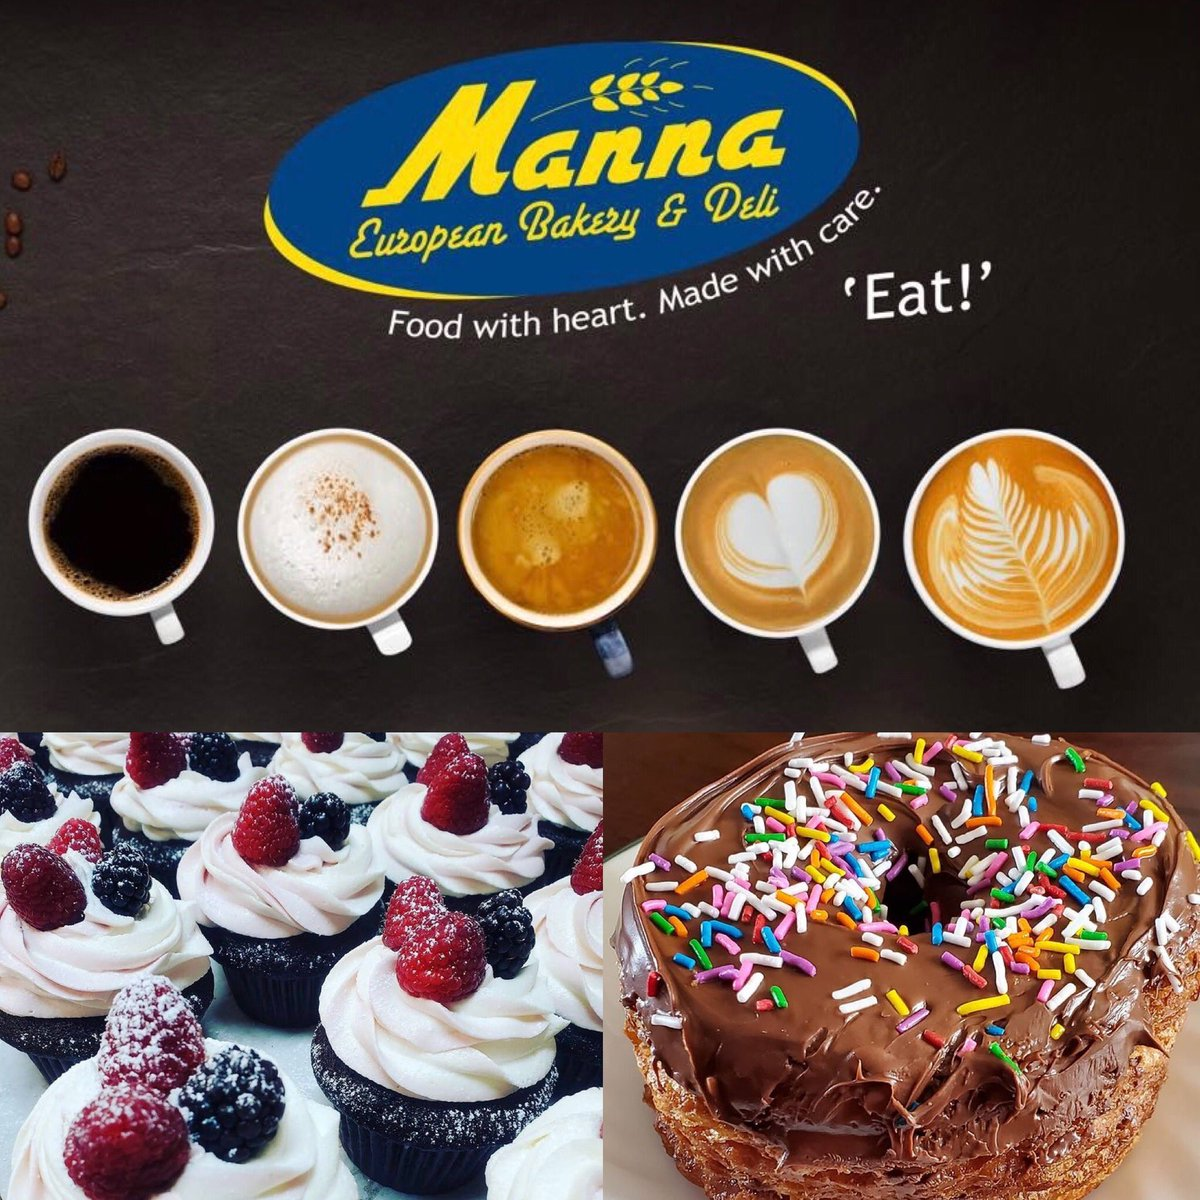 You deserve a special treat from Manna today!   Happy 1/2 Snow Day.  Stay safe and enjoy the winter wonderland.  Featured Coffee - $1.50 Espresso - $1.95 Americano - $1.95 Latte - $2.95 Cappuccino- $2.95  #winter #yyteats #newfoundlandandlabrador #snowday #yummy #snow